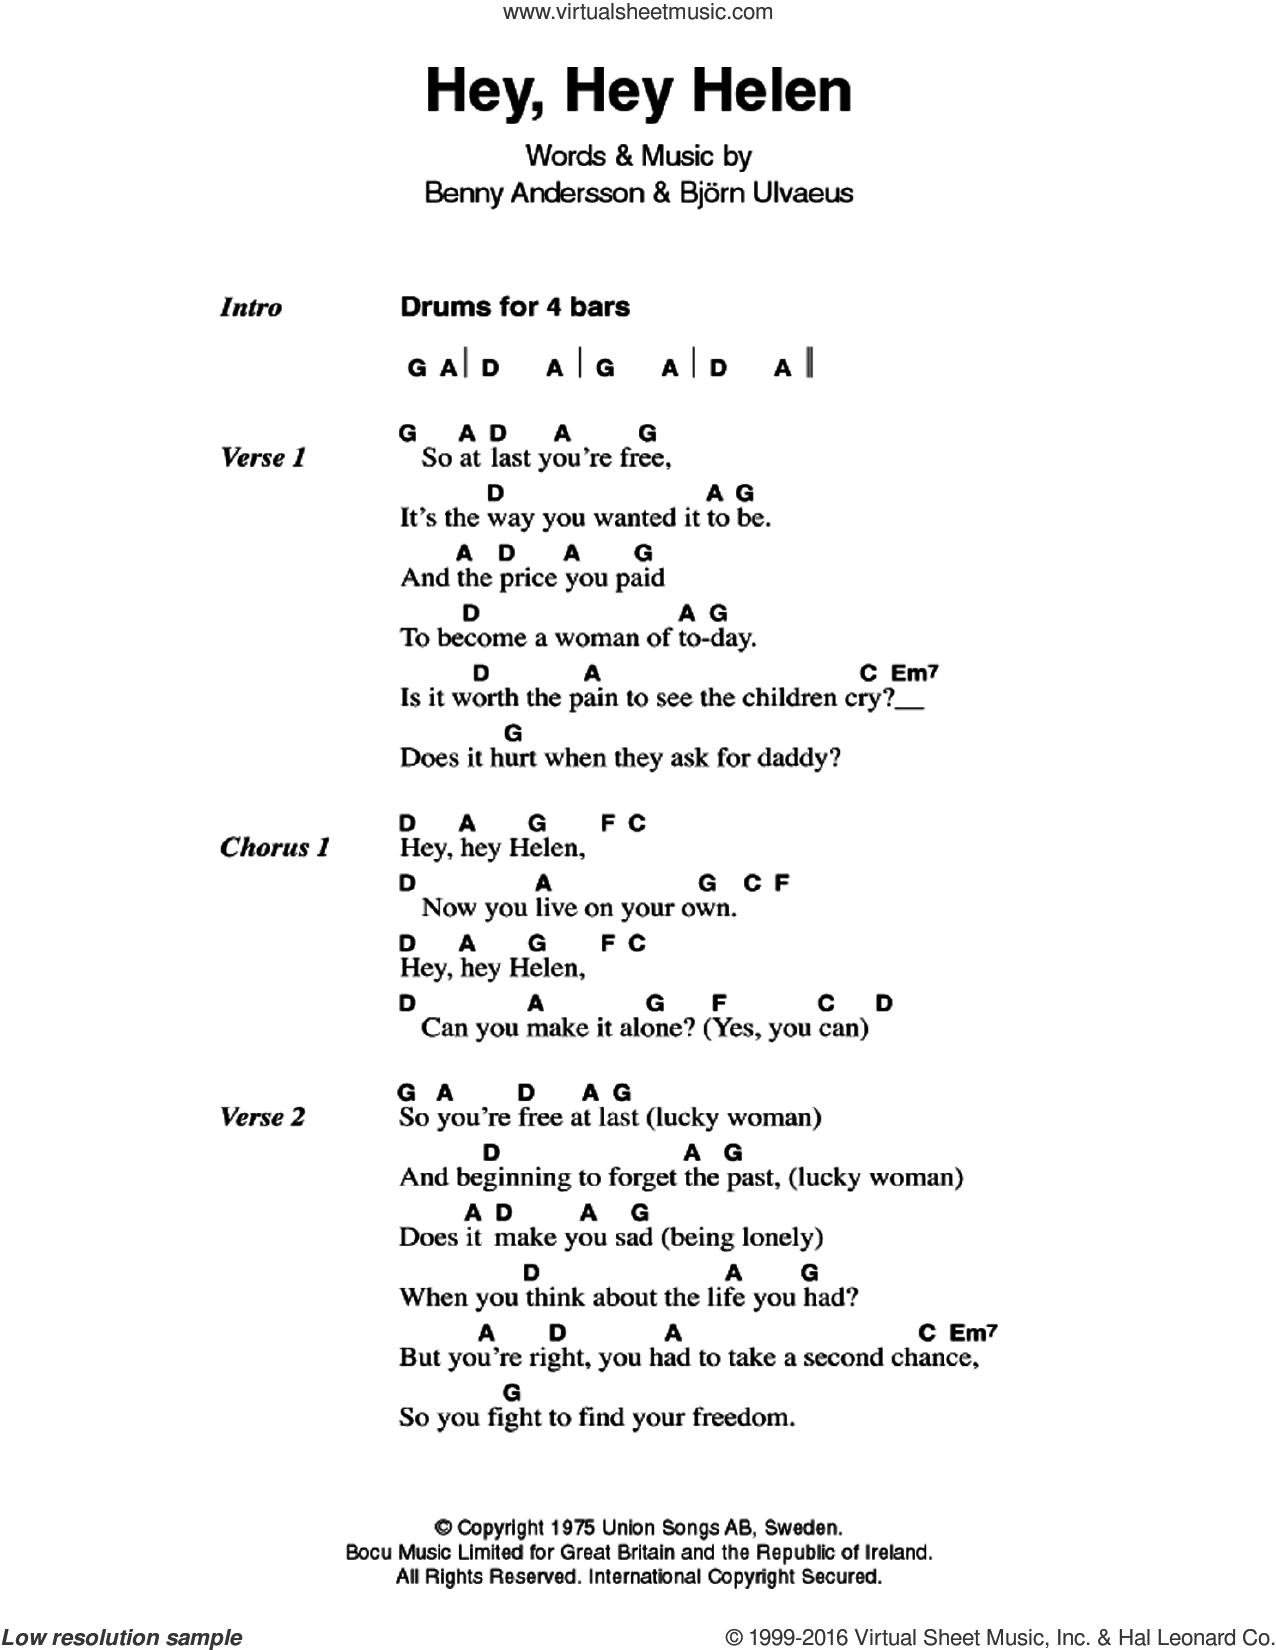 Hey, Hey Helen sheet music for guitar (chords) by ABBA, Benny Andersson and Bjorn Ulvaeus, intermediate skill level